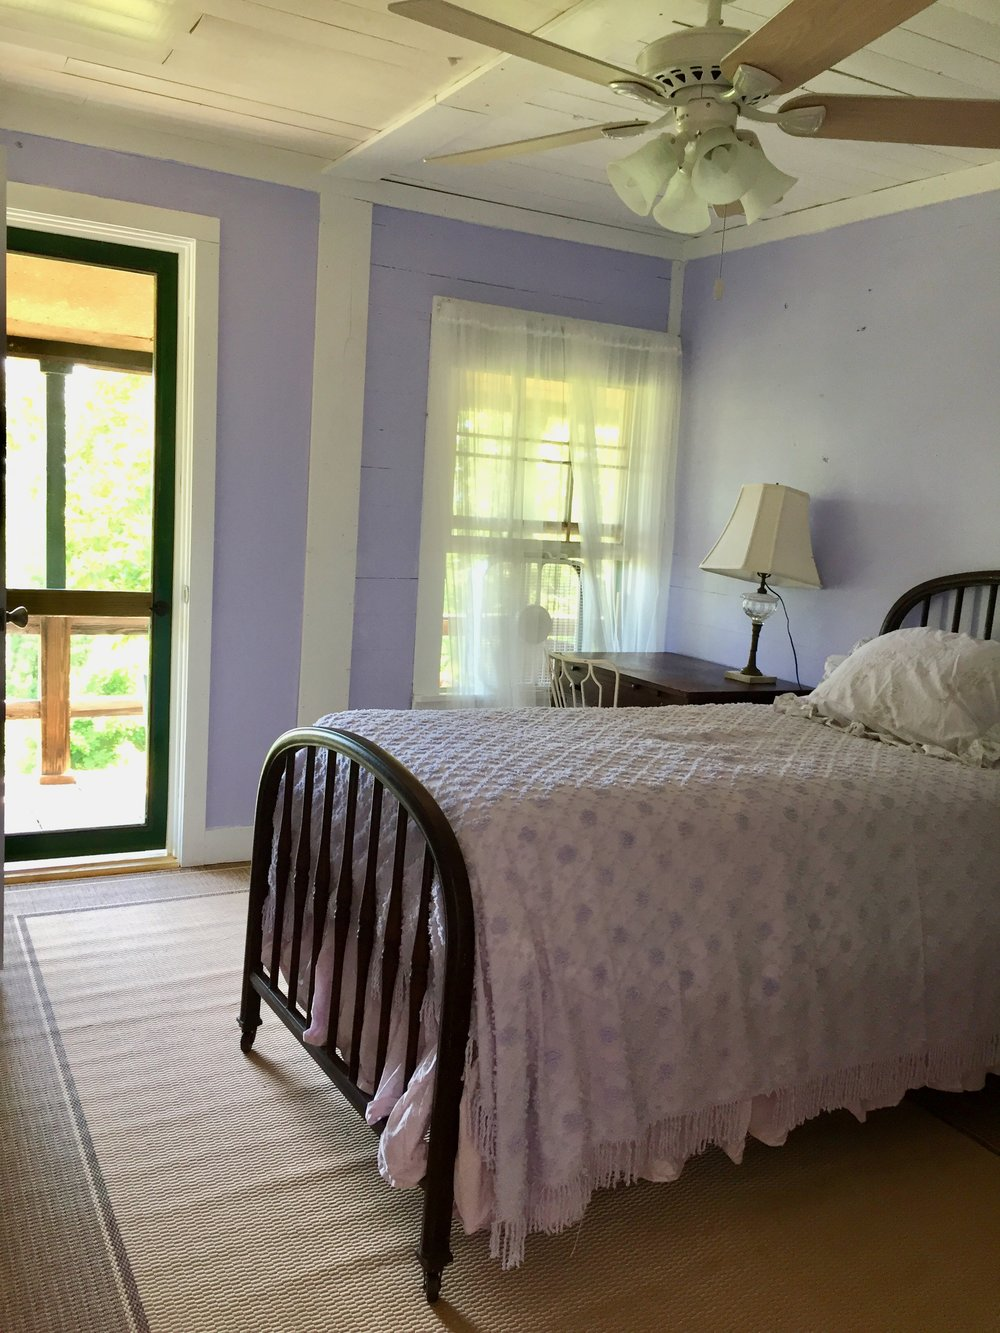 Bedrooms at Nimrod Hall are a blend of modern vintage with a focus on comfort and nostagia